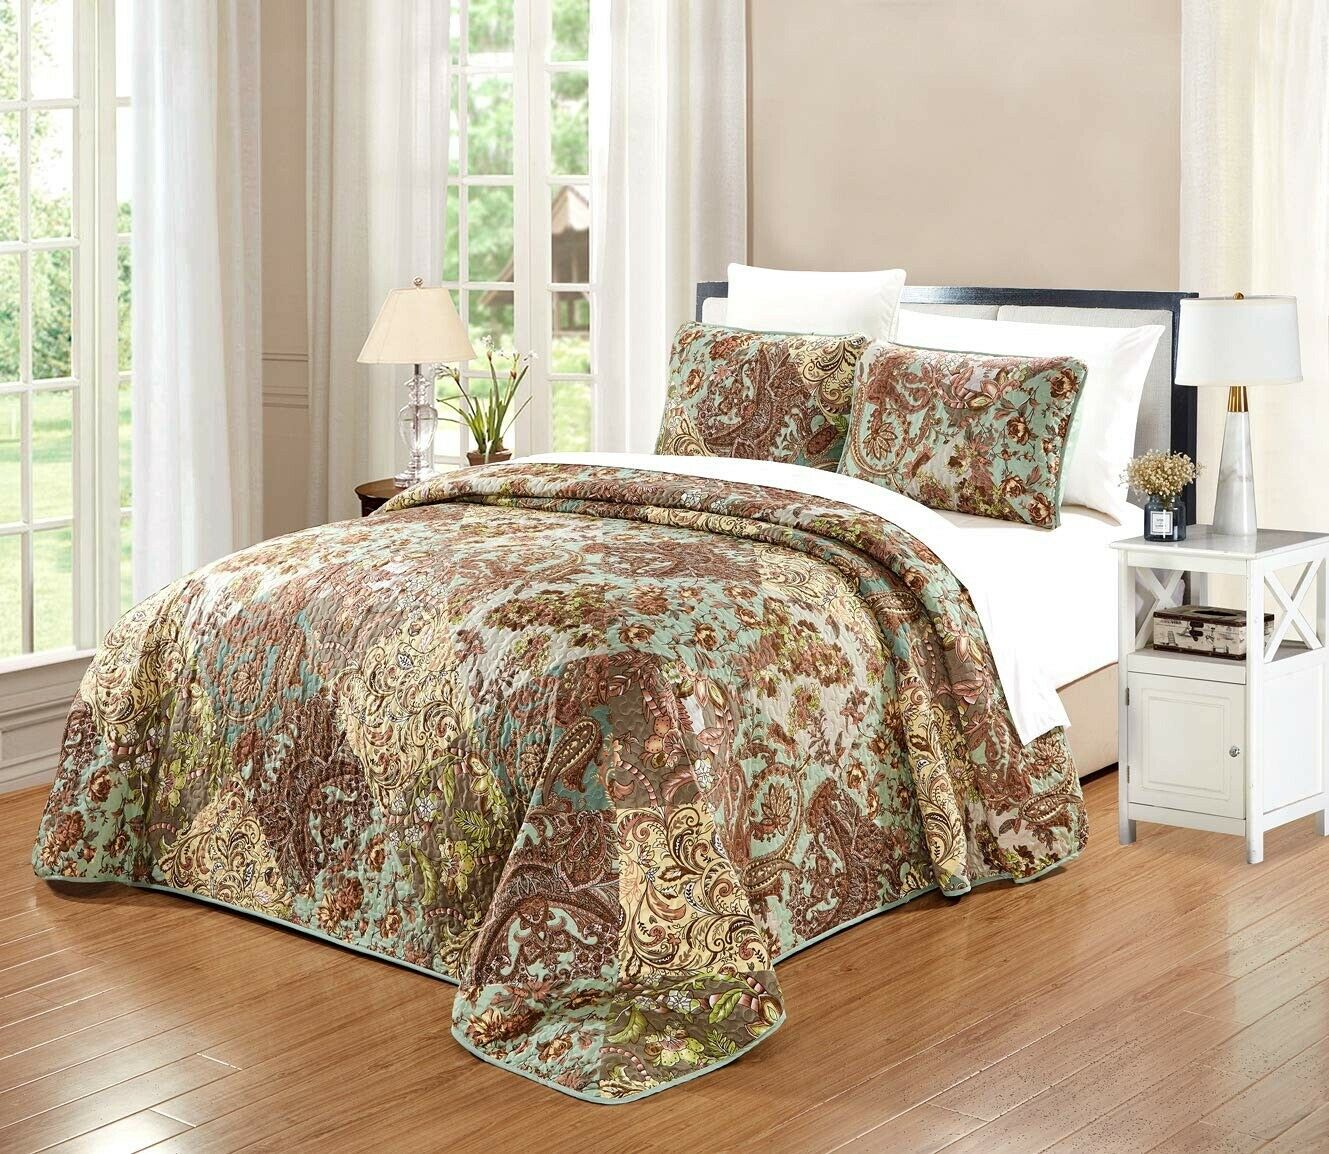 Multi Coloree Sage verde Paisley Floral Reversible Bedspread QUEEN Dimensione Coverlet